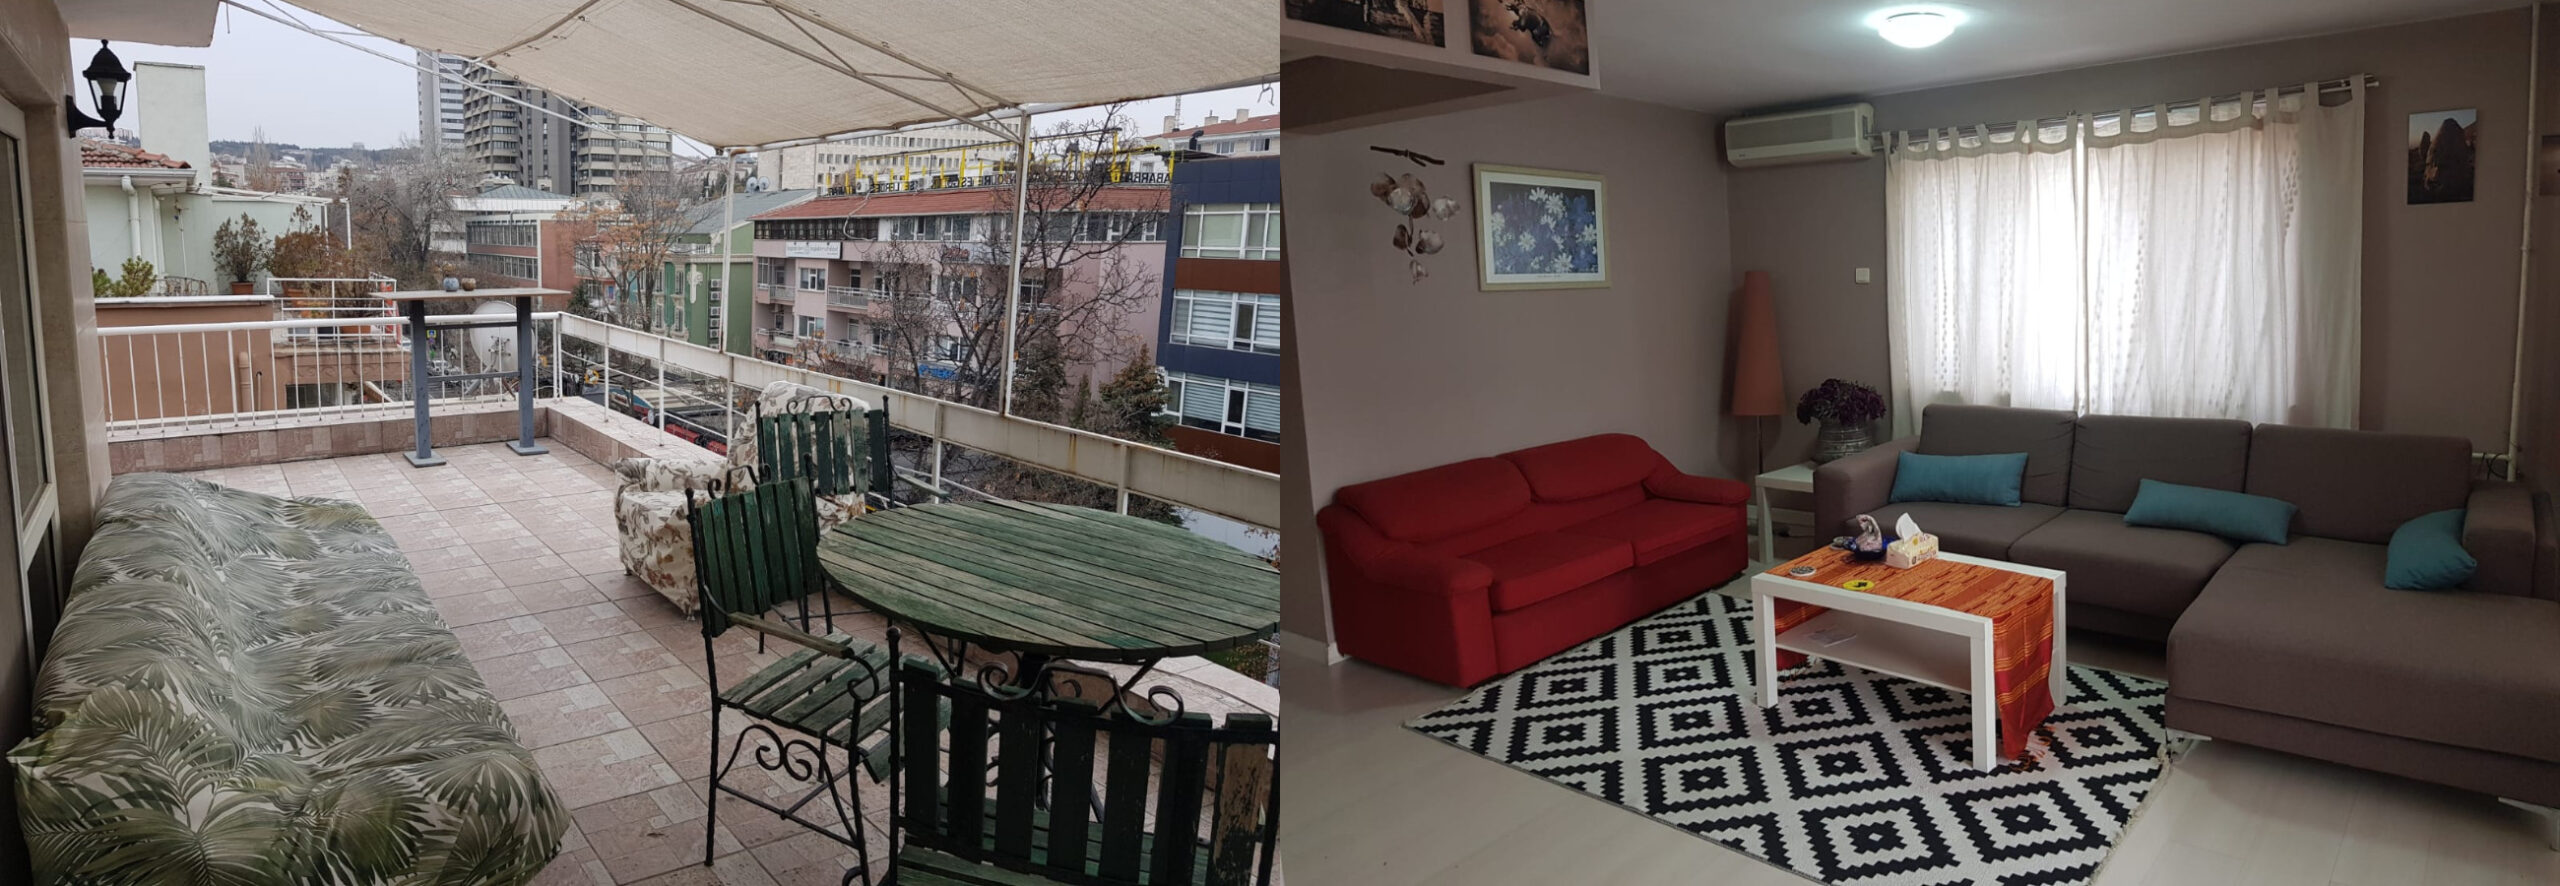 2+1 FURNISHED FLAT WITH HUGE TERRACE IN KAVAKLIDERE